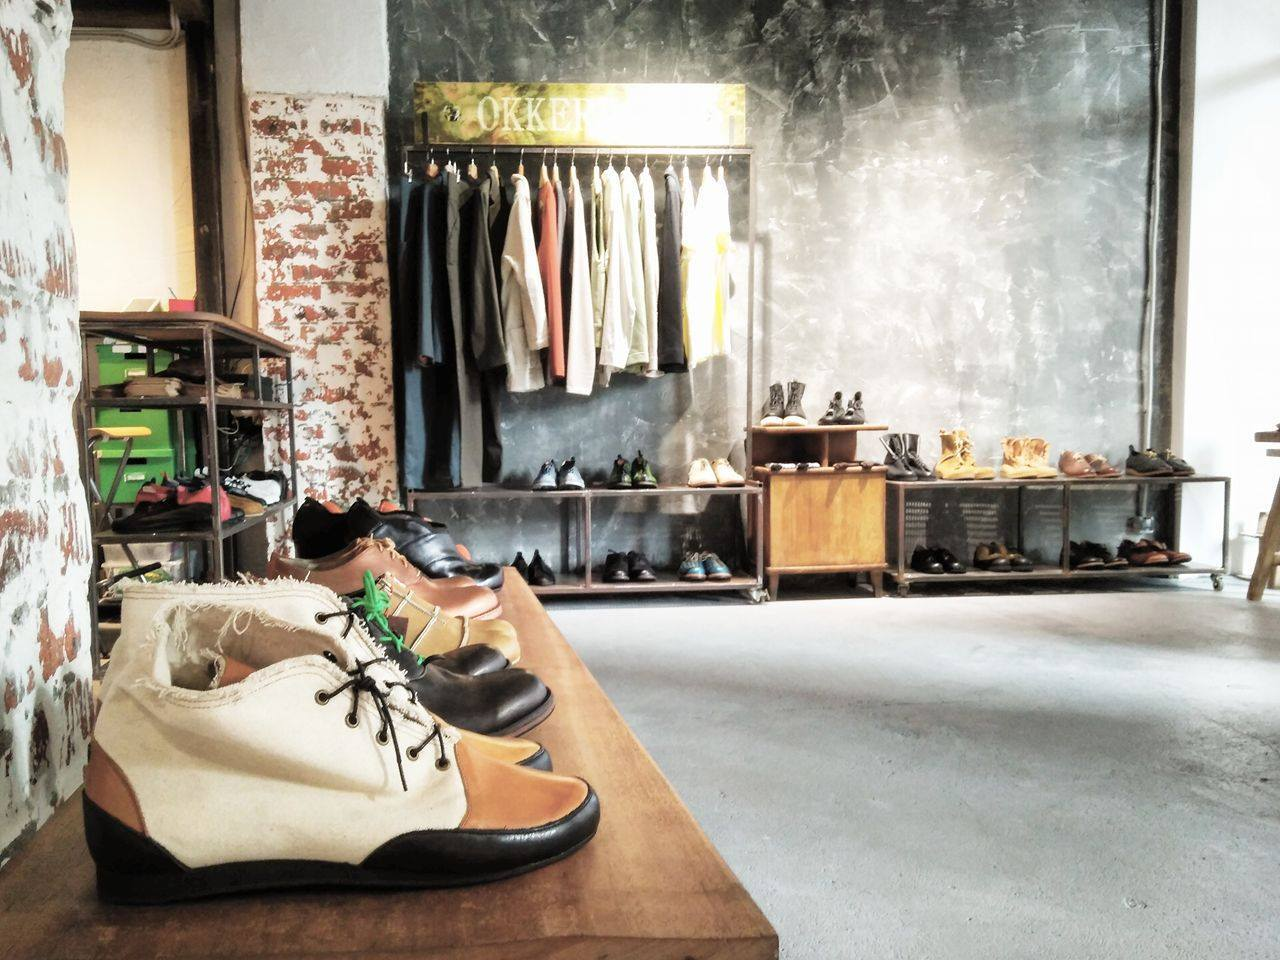 NotMySize store opened in the 9 Bakery space